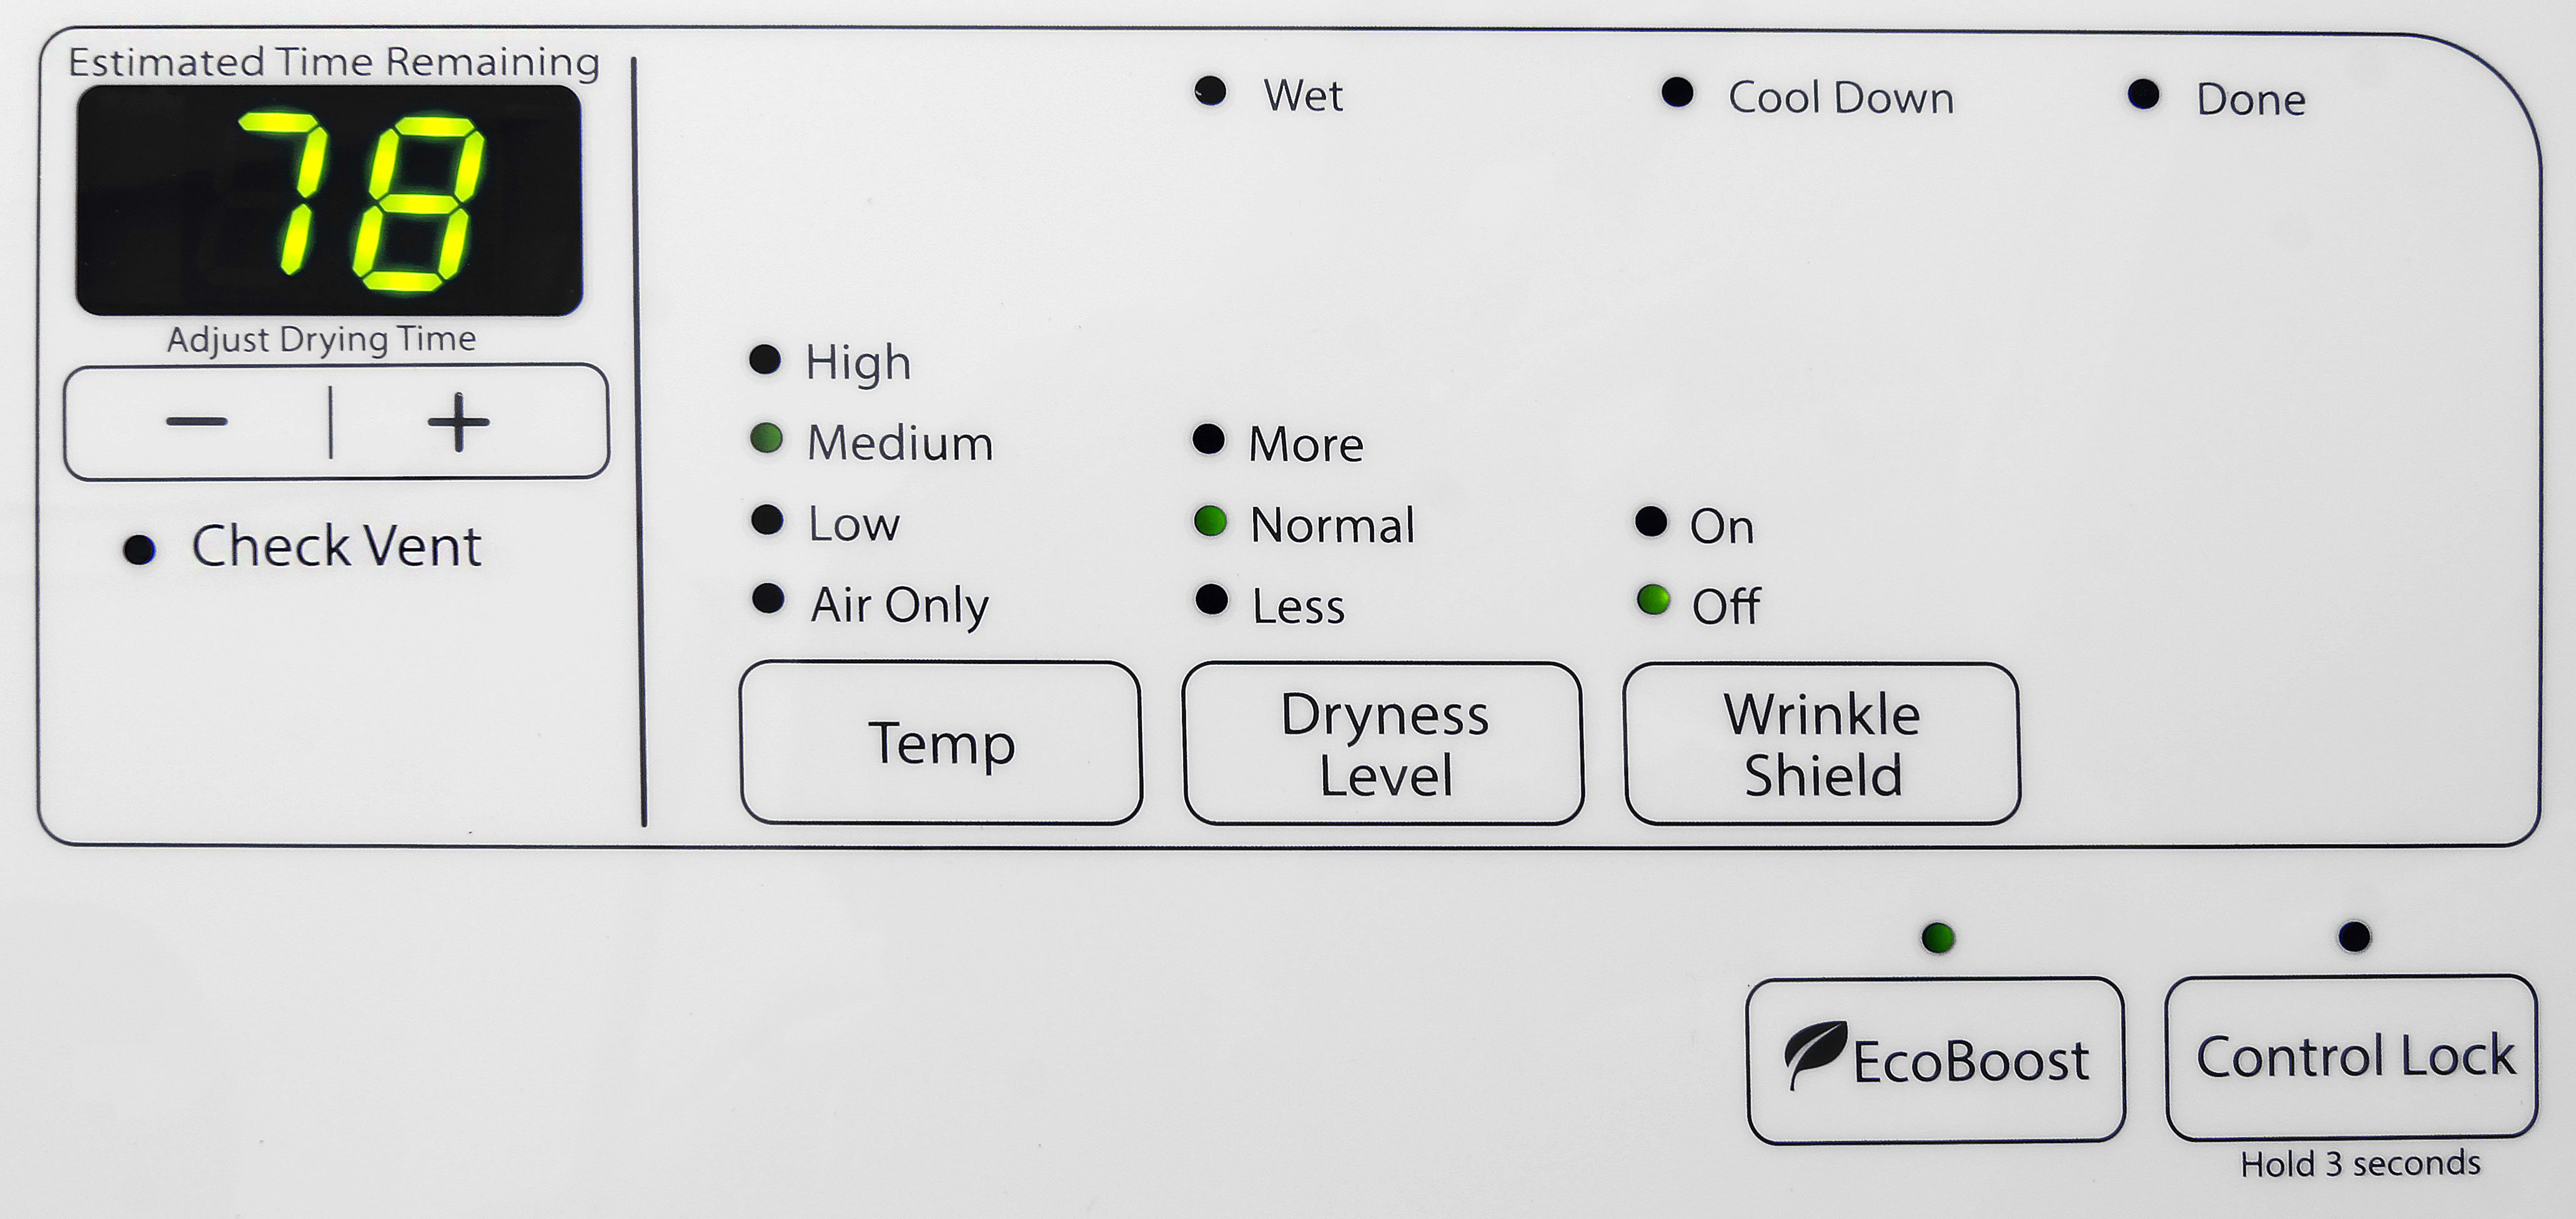 If you like simple appliances with a low learning curve, the Whirlpool Duet WED72HEDW might be a good dryer for you.